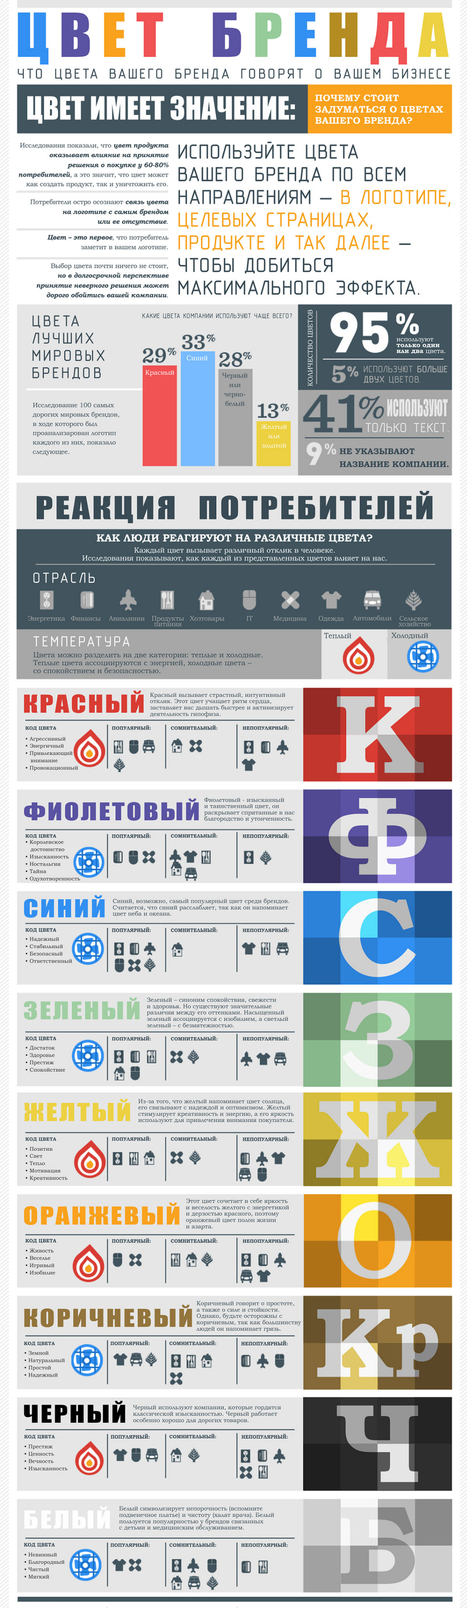 цвет бренда.jpg (1130x3890 pixels) | World of #SEO, #SMM, #ContentMarketing, #DigitalMarketing | Scoop.it